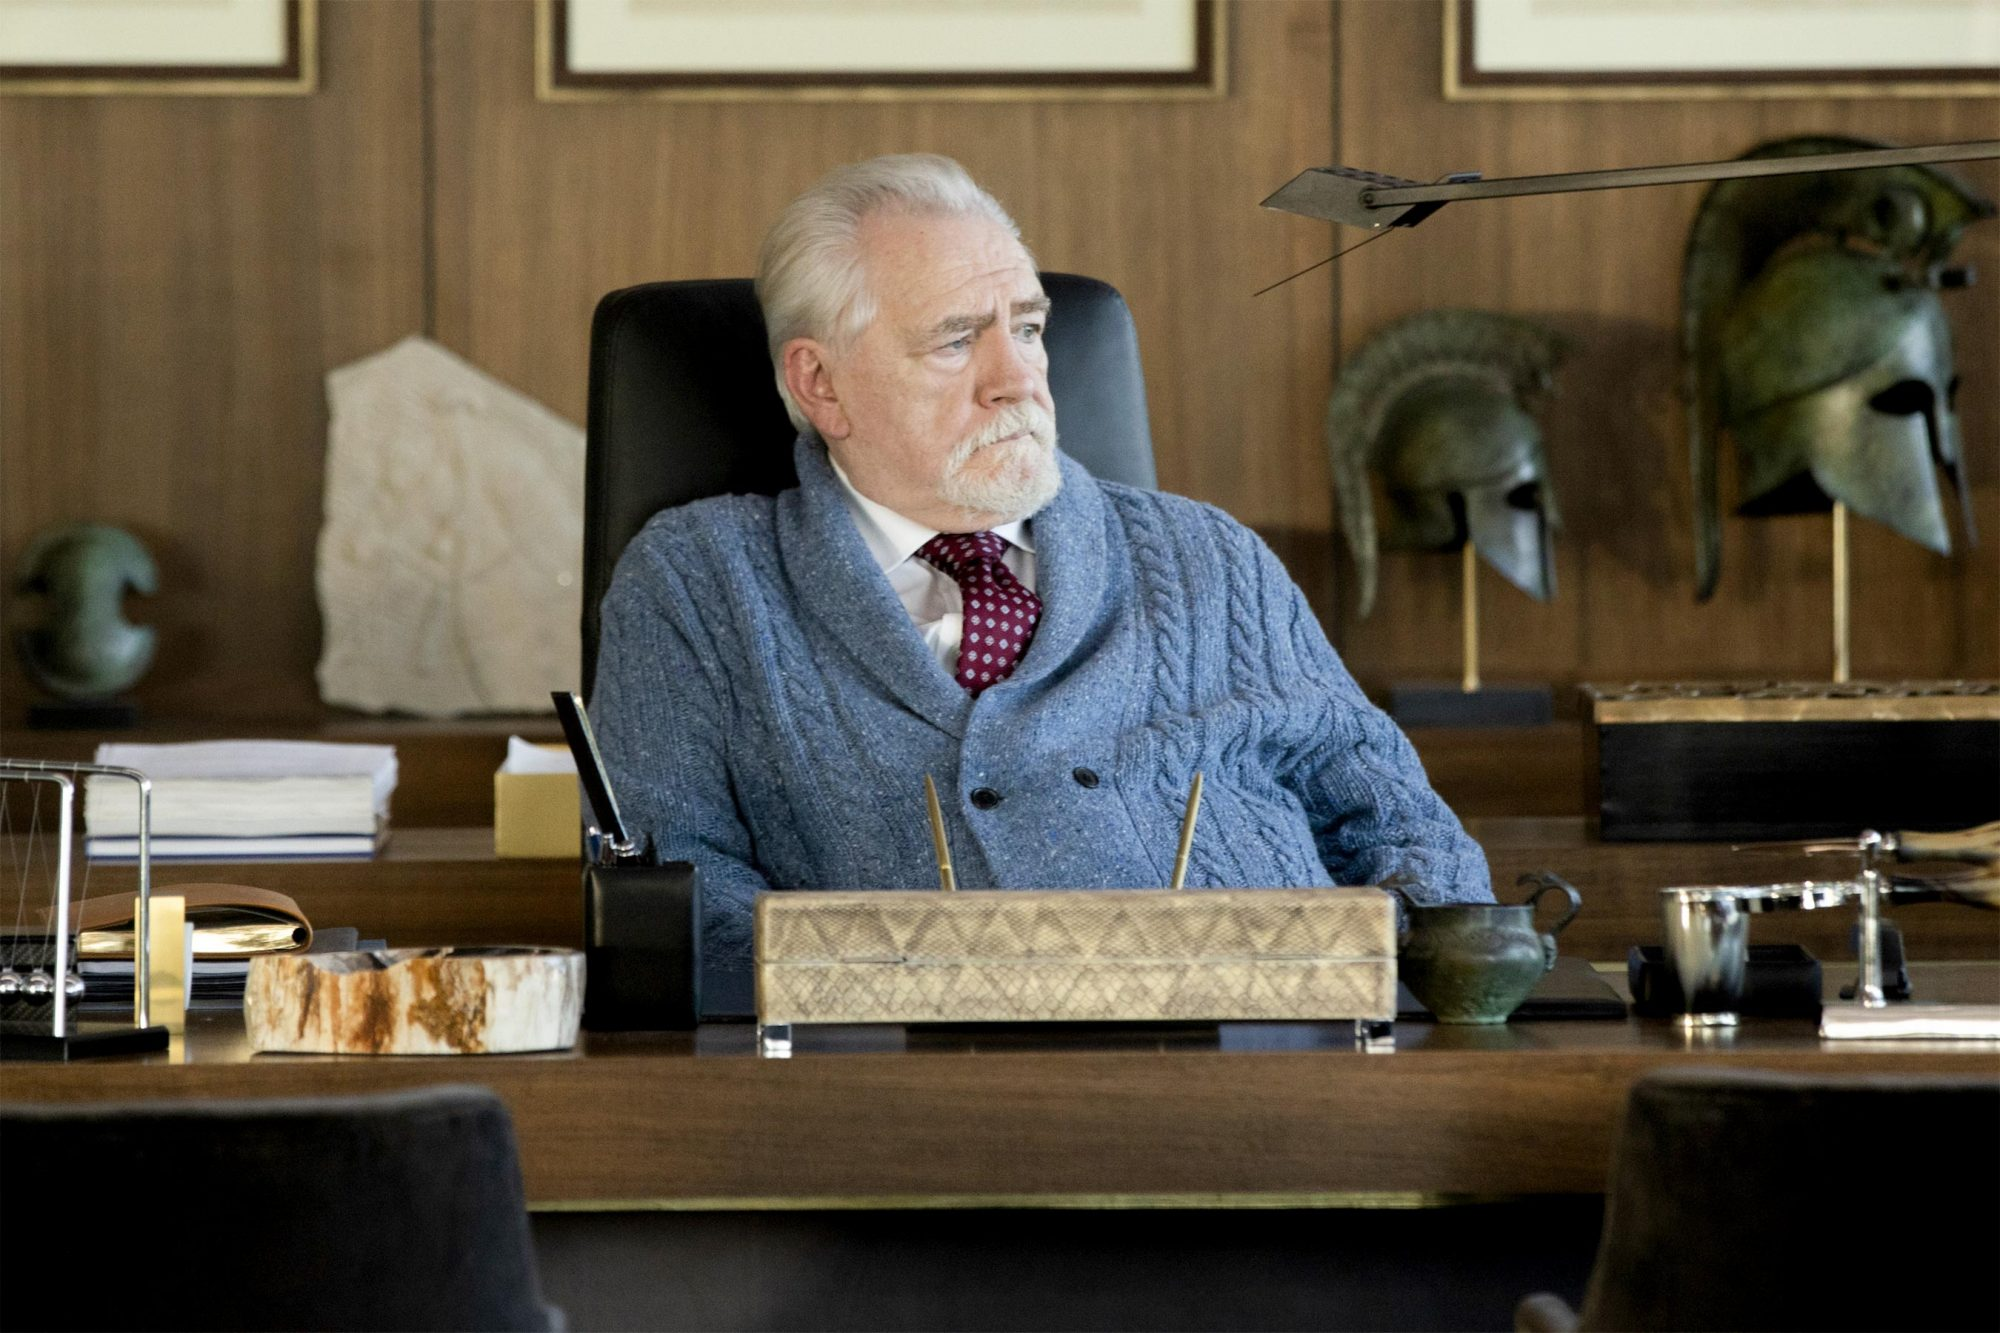 Succession Season 2 Brian Cox photo: Craig Blankenhorn/HBO